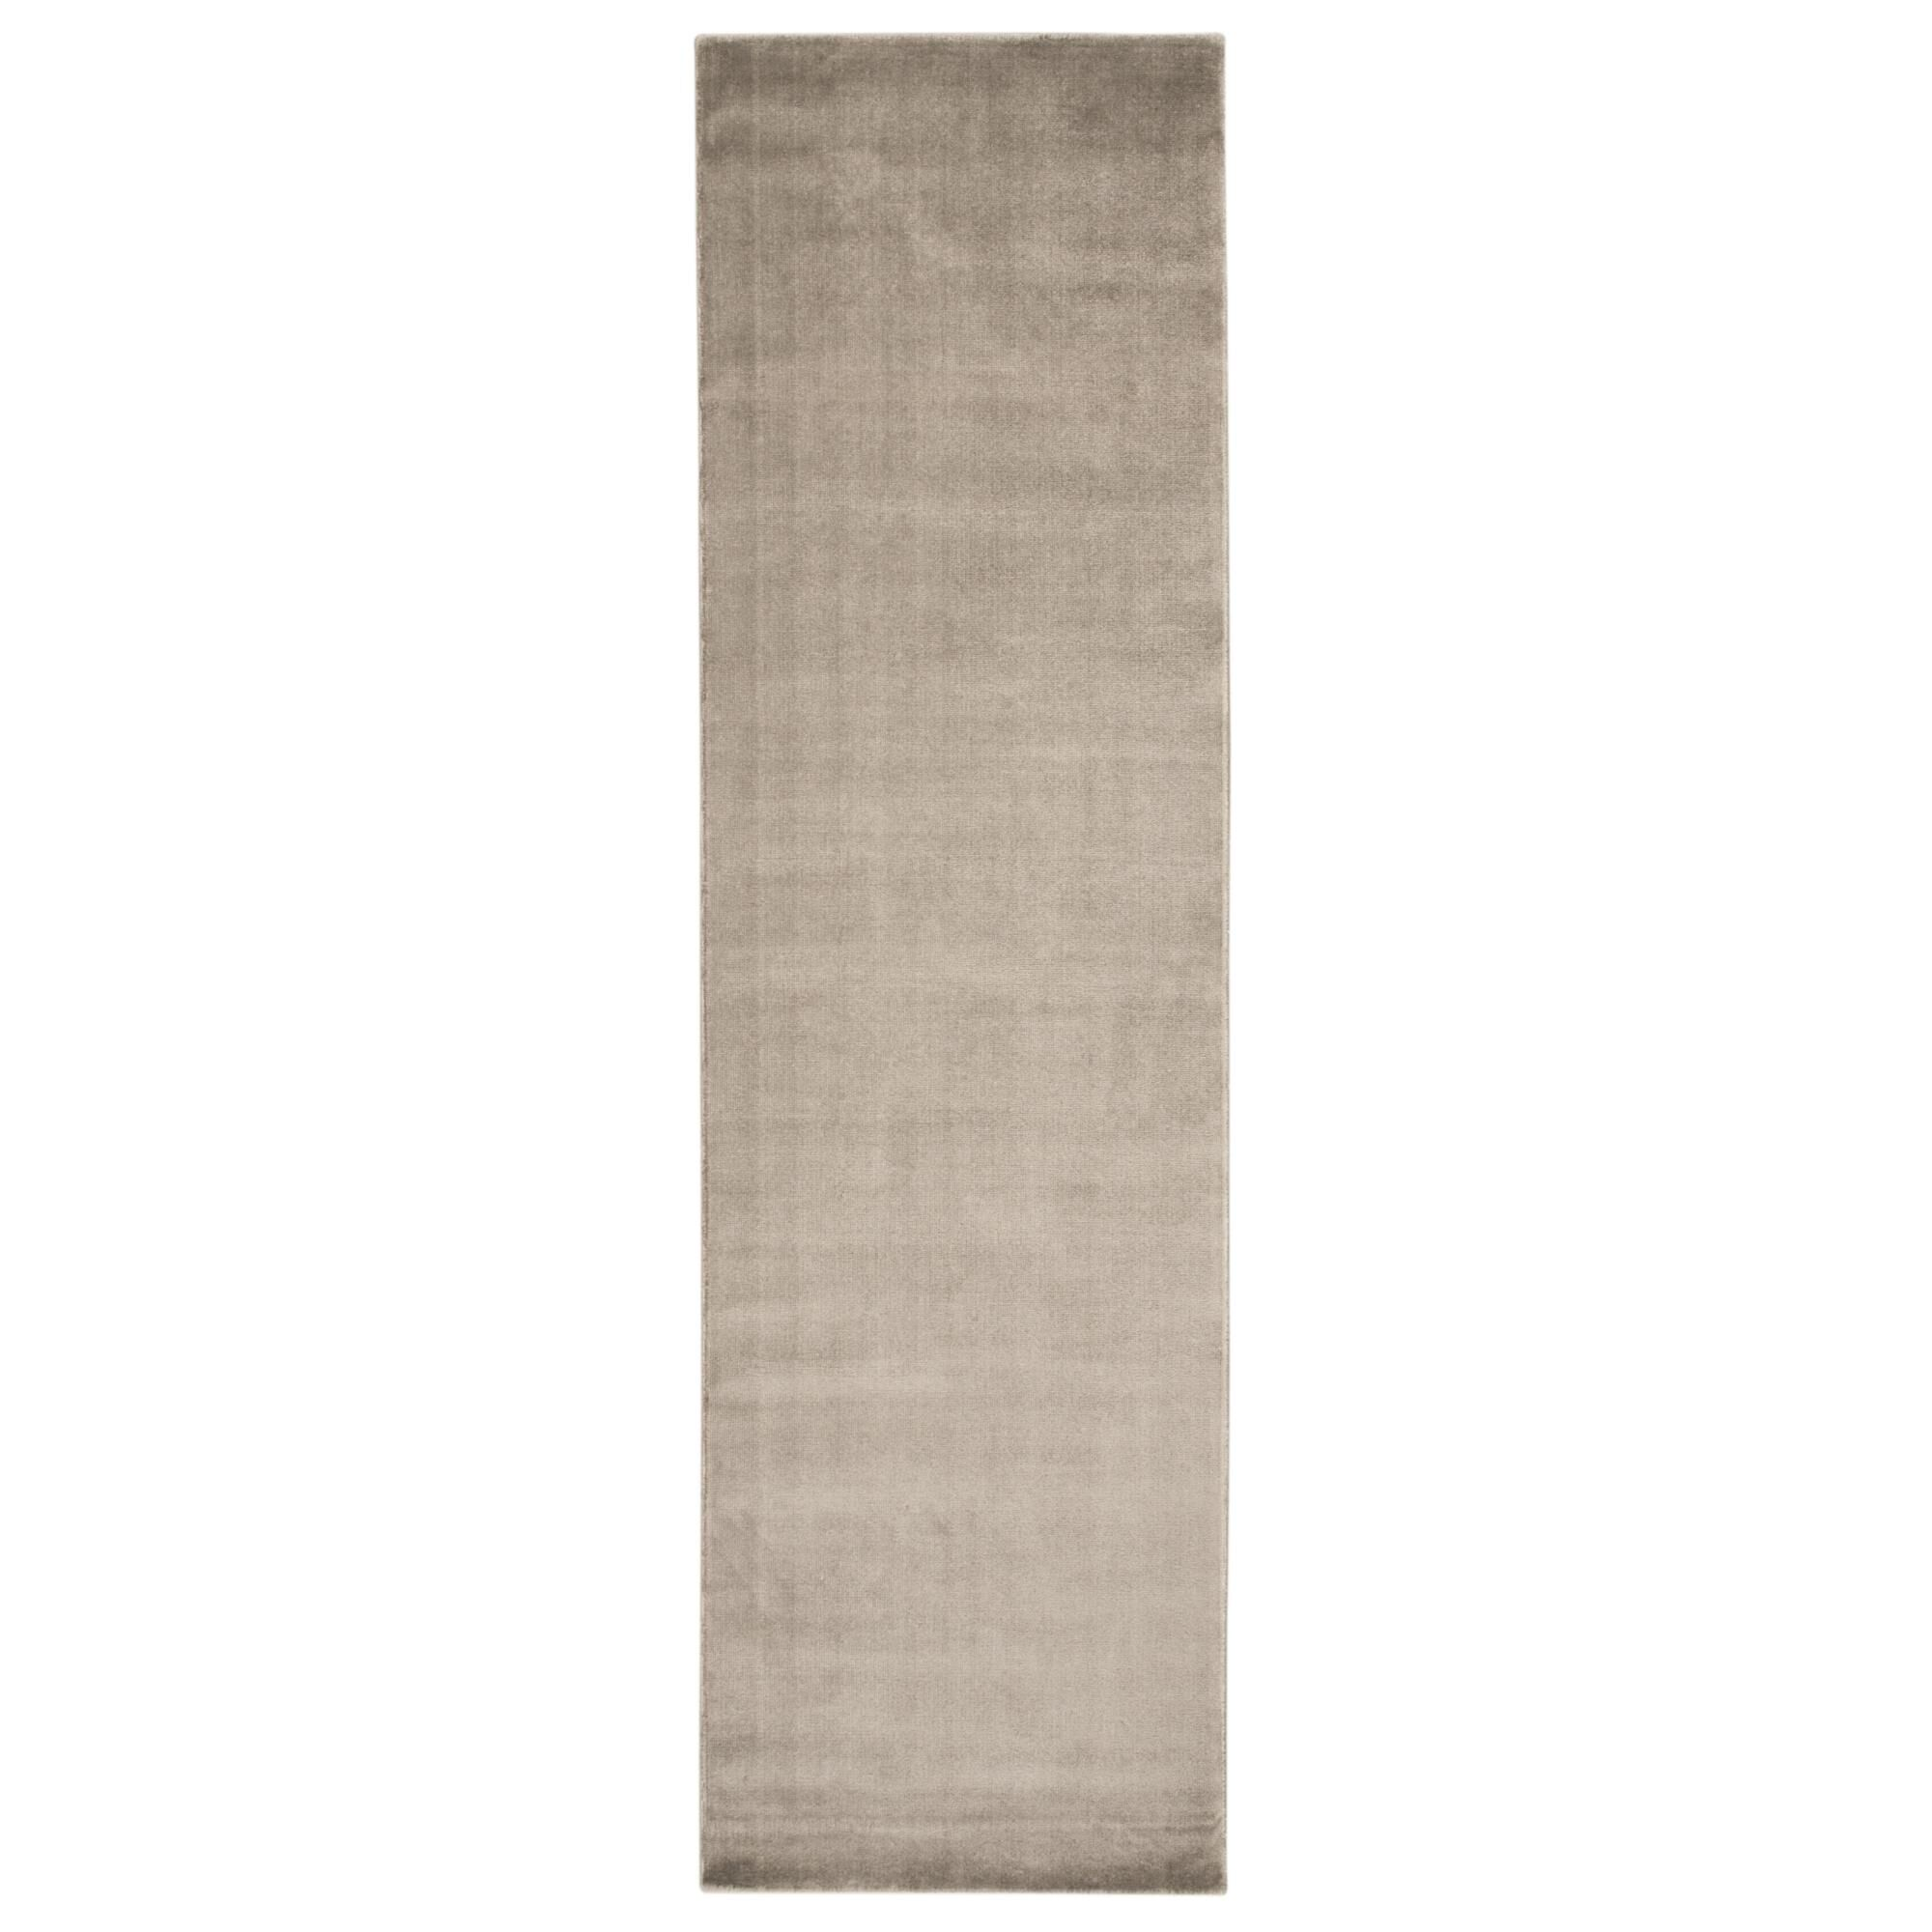 Buiron Taupe Area Rug Rug Size: Runner 2'3